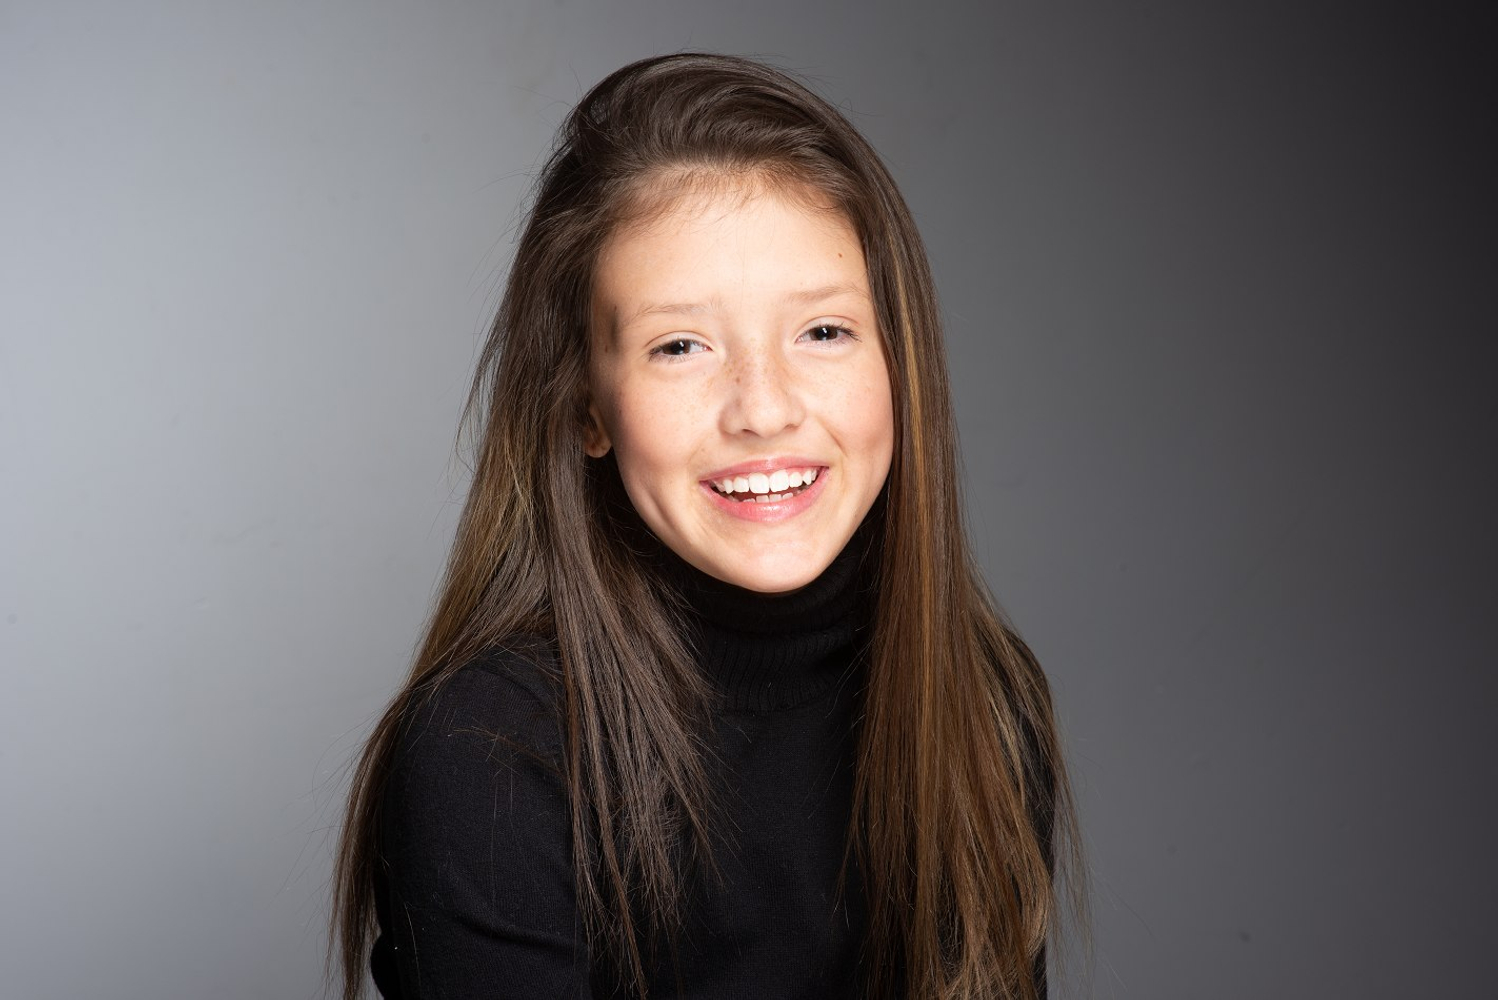 Paislee Collins represented by The Tabb Agency